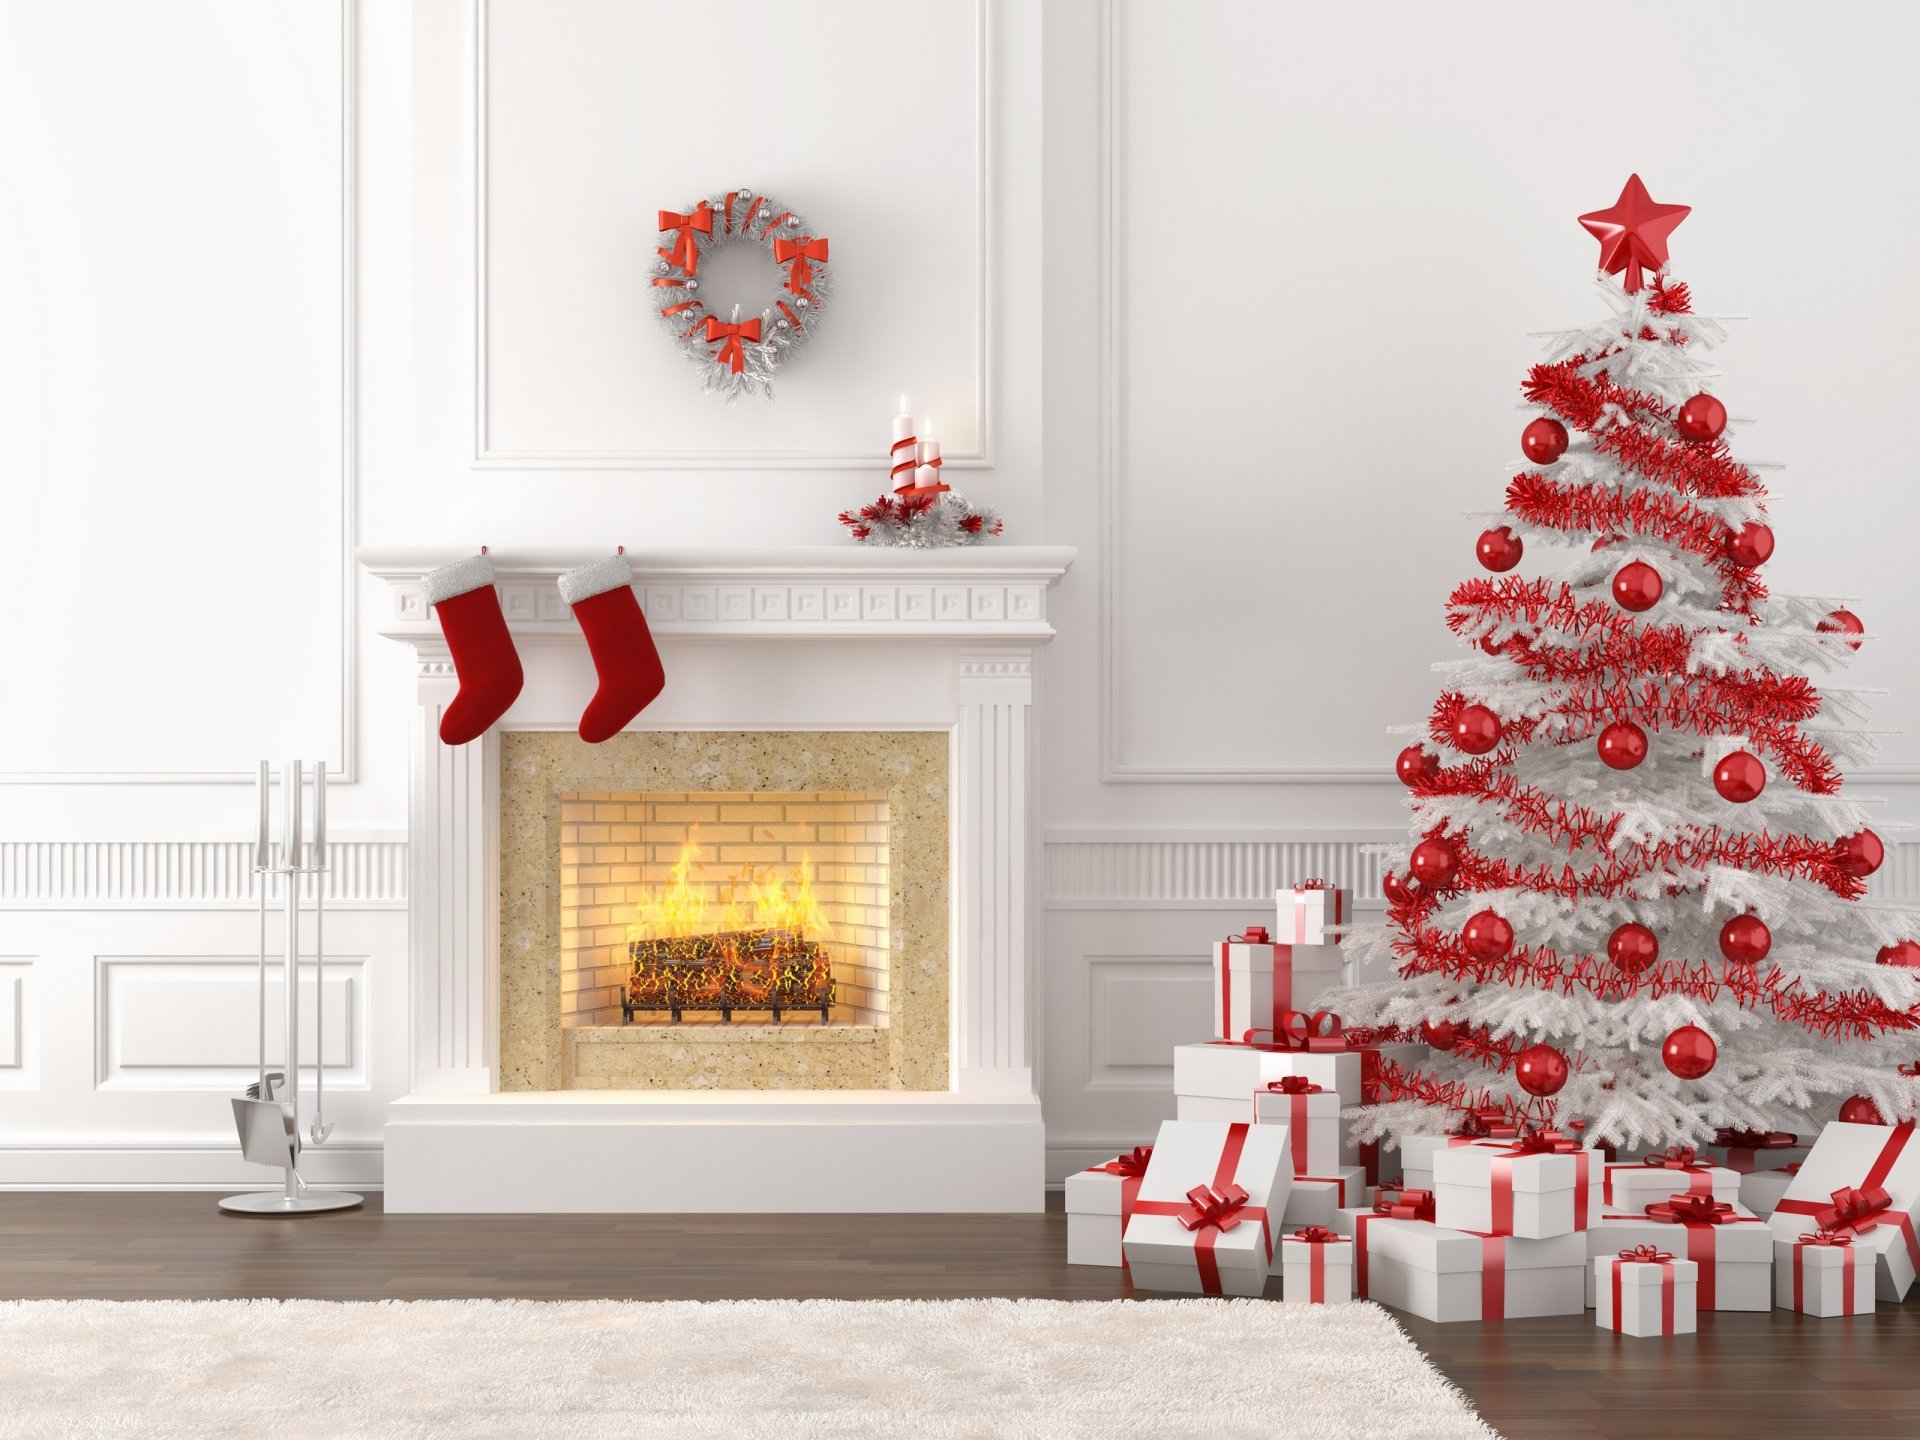 Holiday - Christmas  Christmas Tree Christmas Ornaments Gift Fireplace Wallpaper